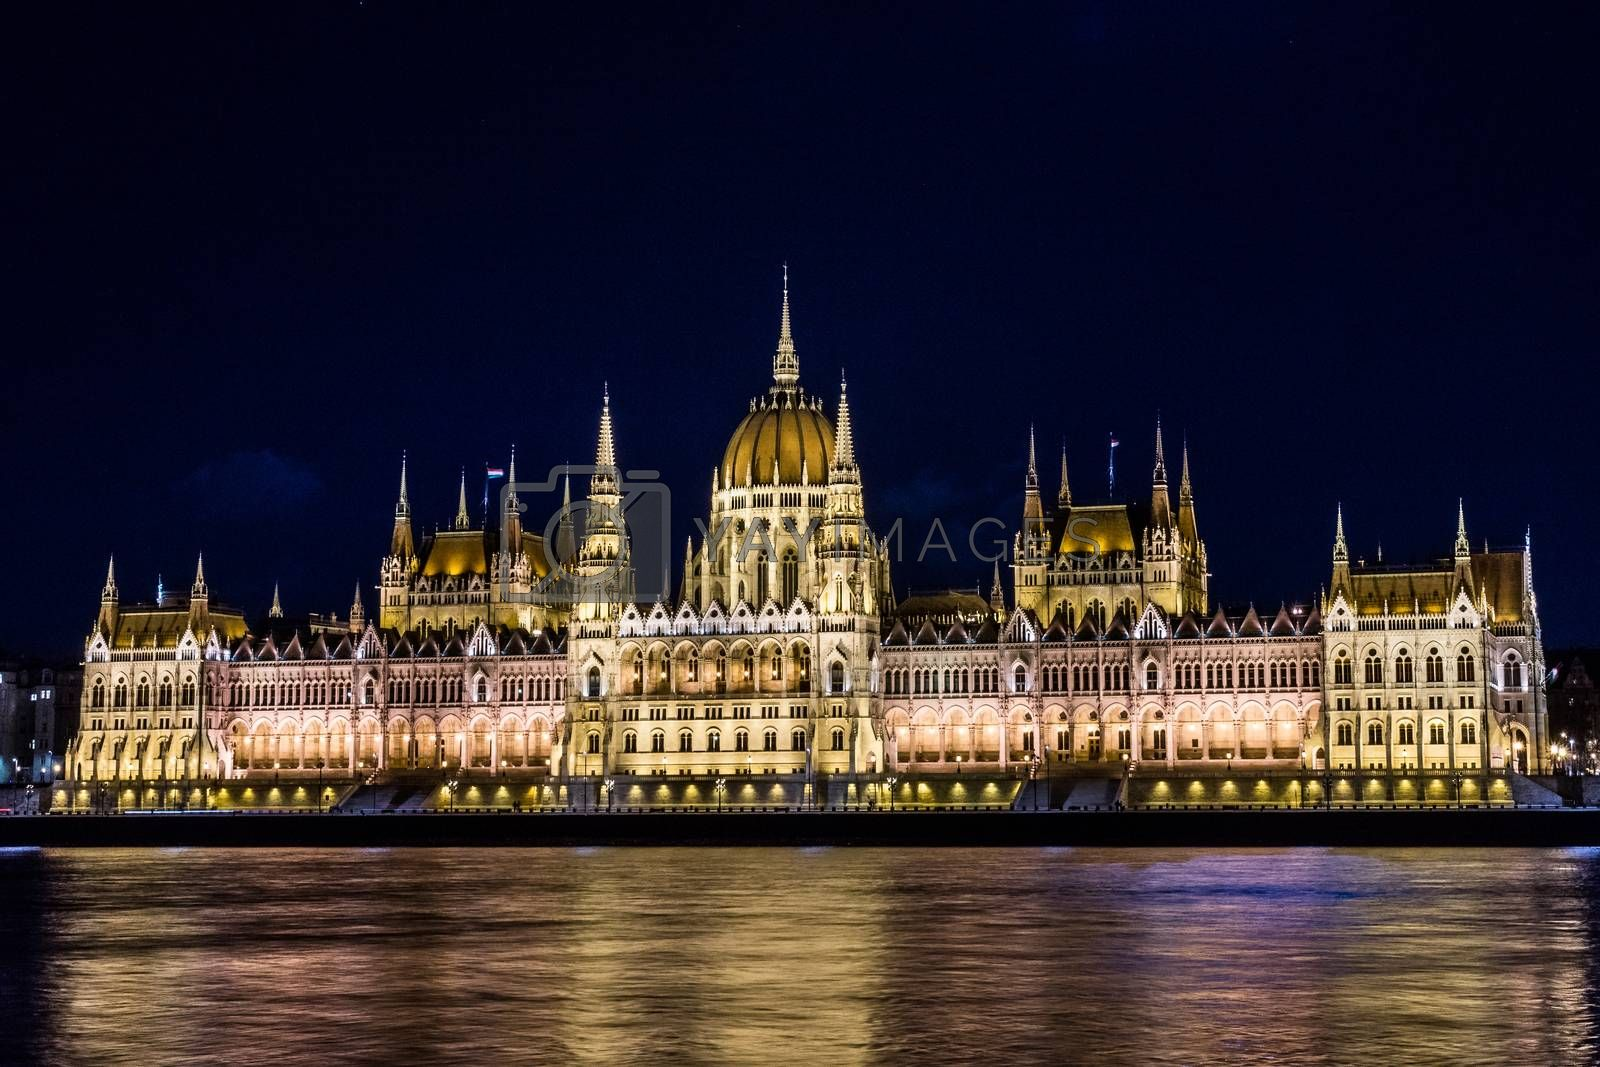 The photo shows the Parliament building in Budapest